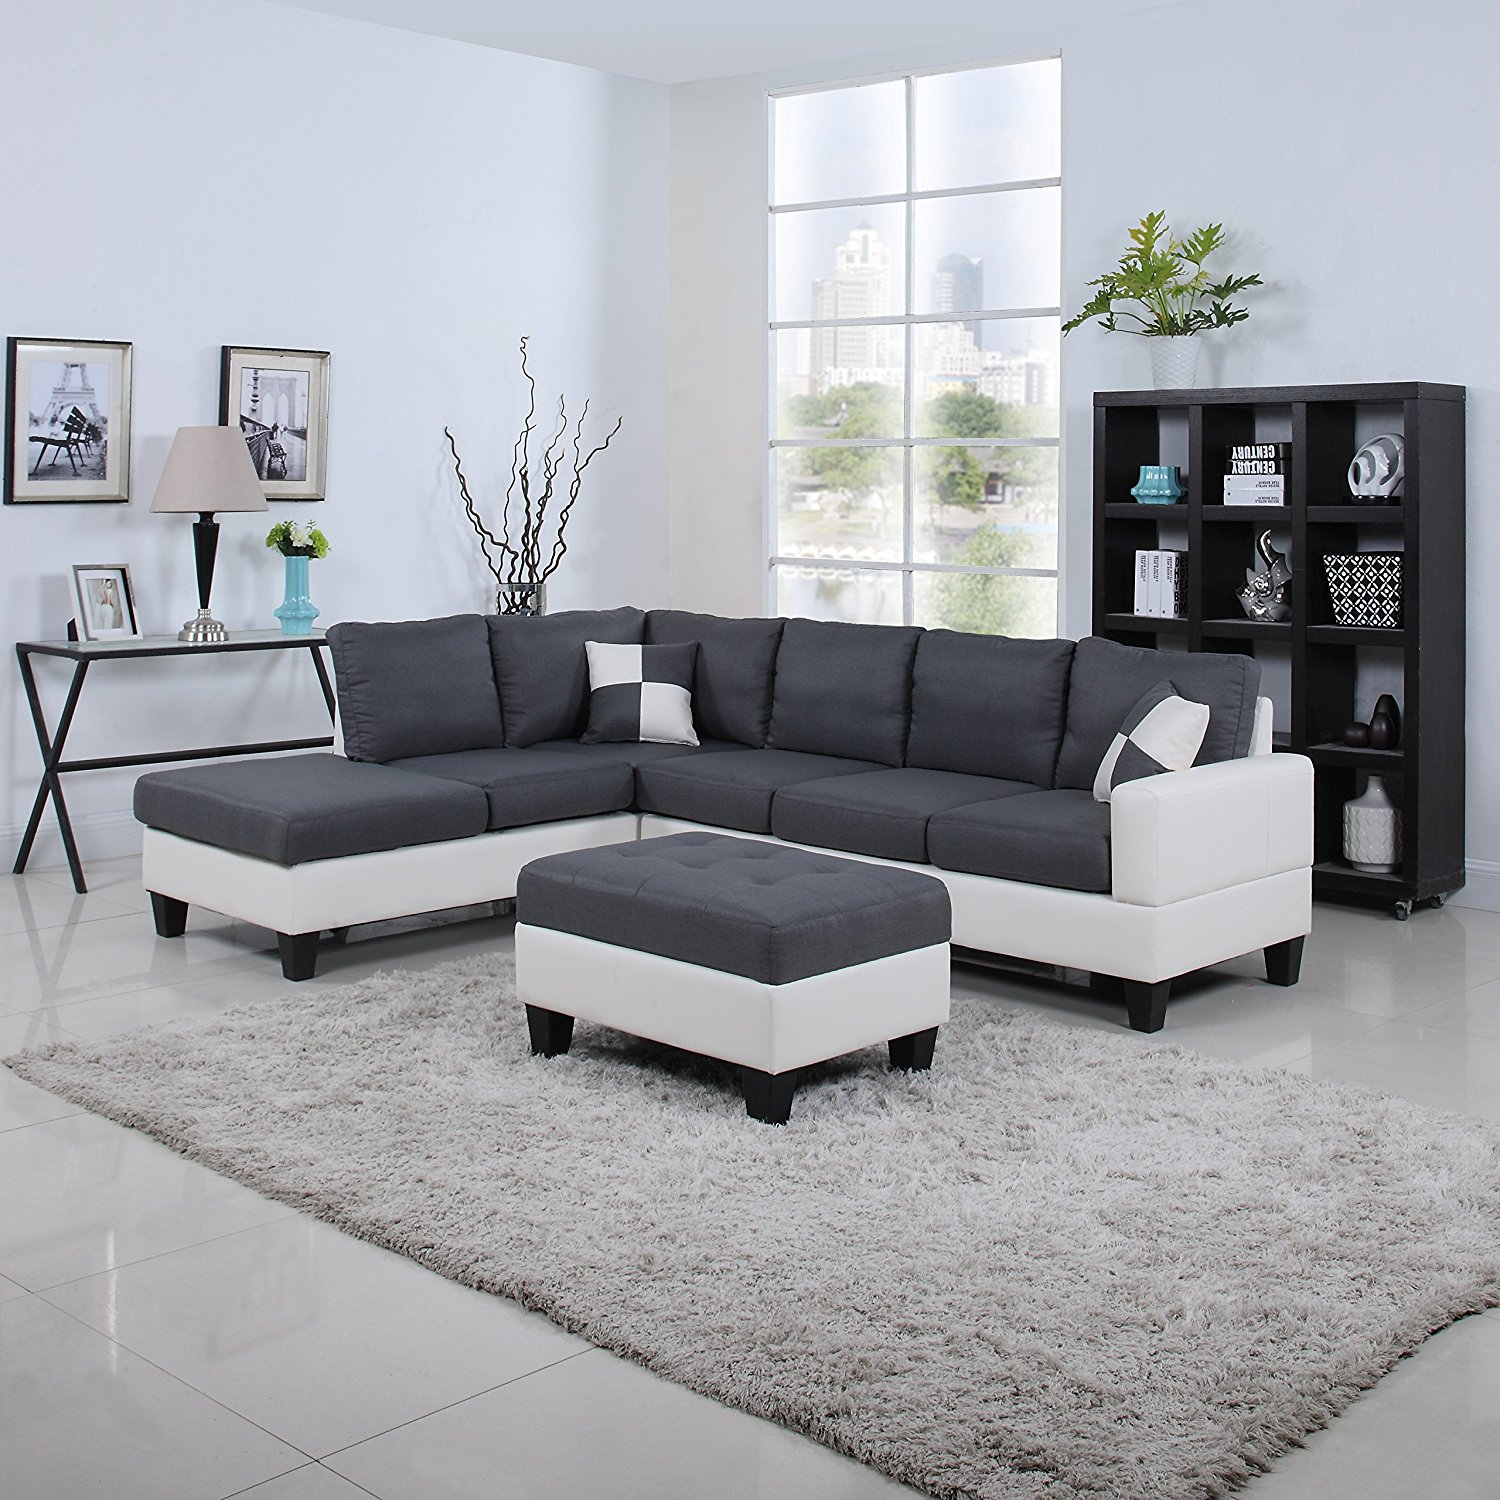 black white 2 tone leather living room sectional sofa white dark grey rochester. Black Bedroom Furniture Sets. Home Design Ideas